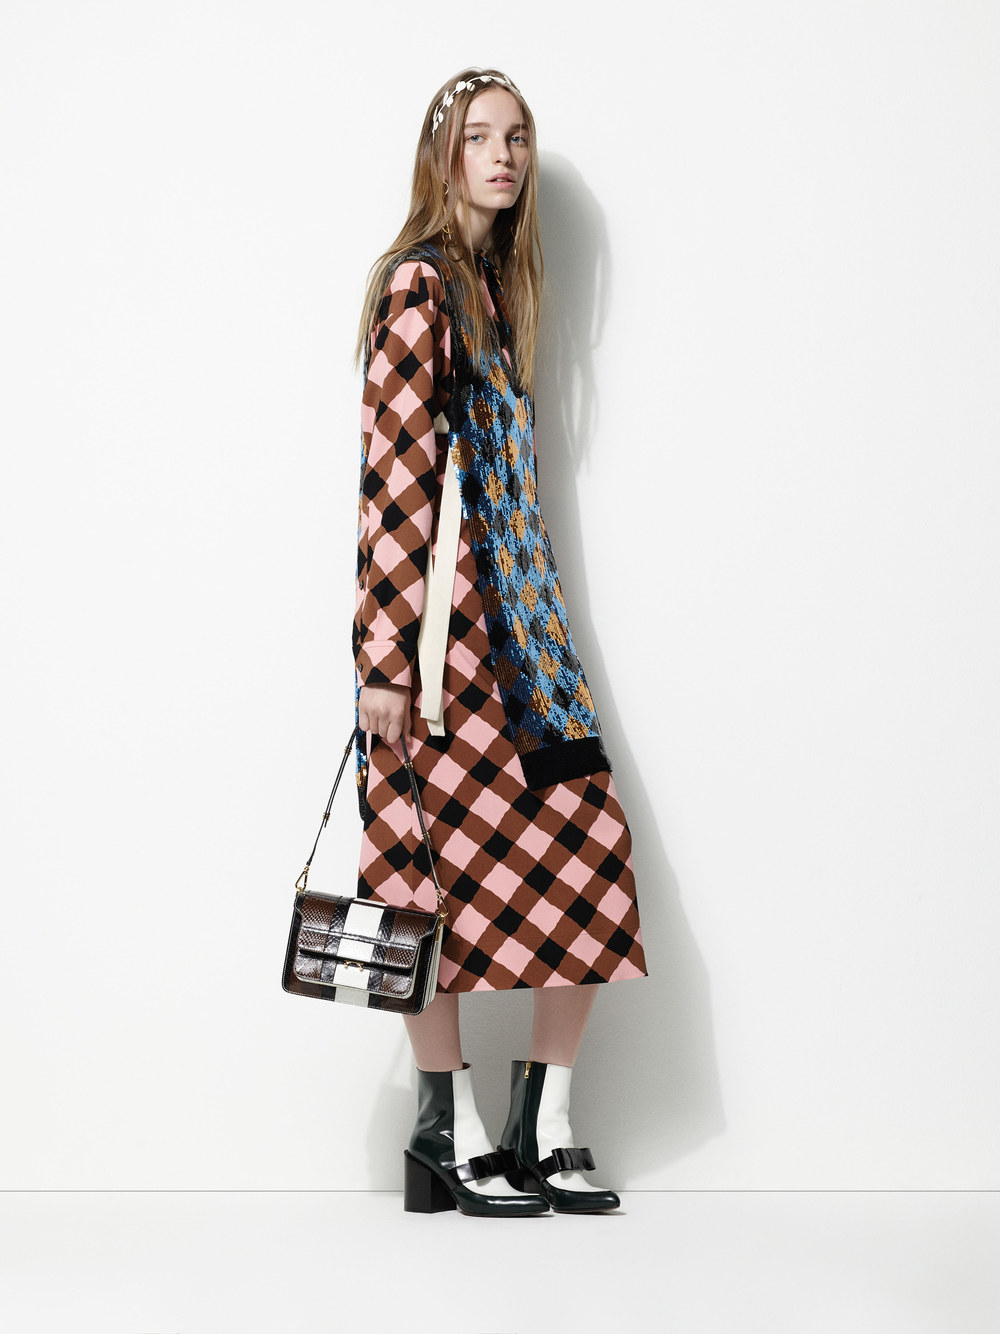 marni-pre-fall-2016-lookbook-22.jpg